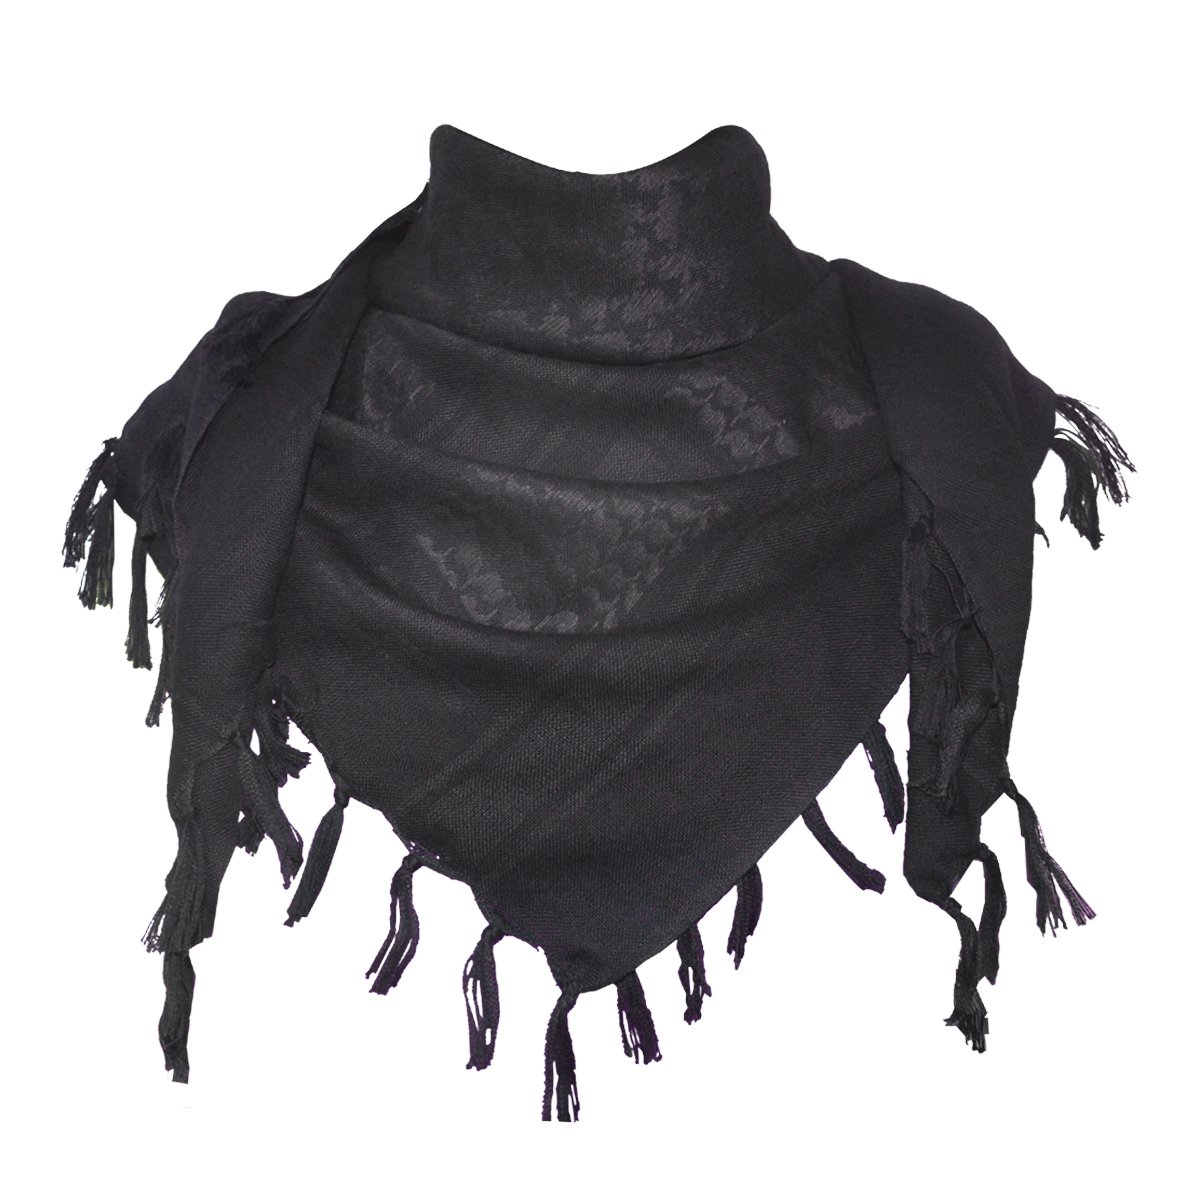 Explore Land 100% Cotton Military Shemagh Tactical Desert Keffiyeh Scarf Wrap (Black)